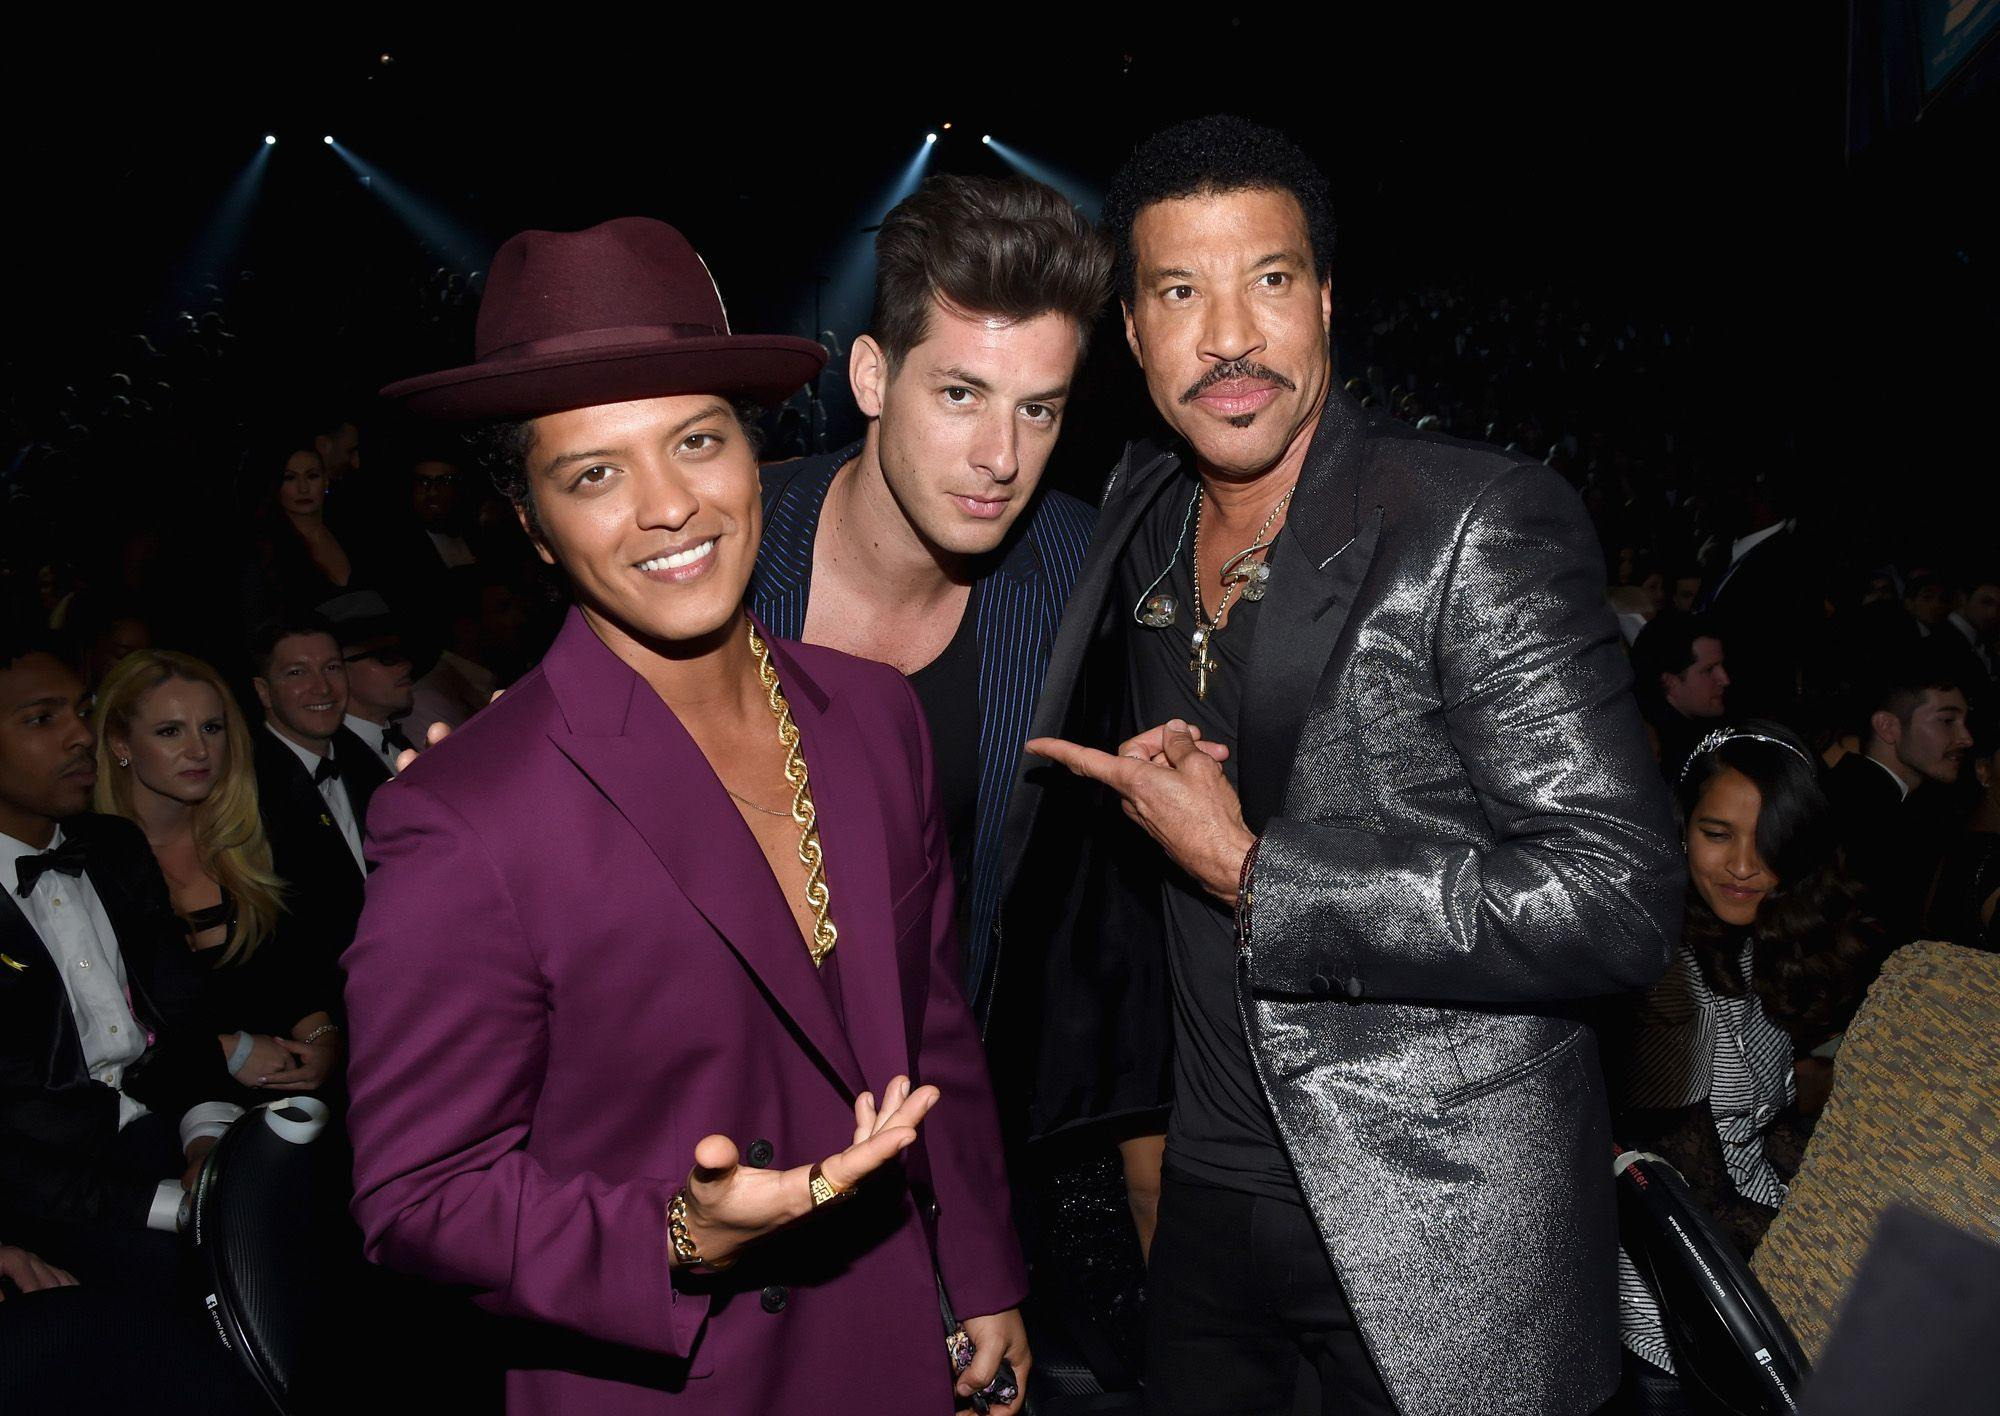 Bruno Mars with Lionel Richie and Mark Ranson